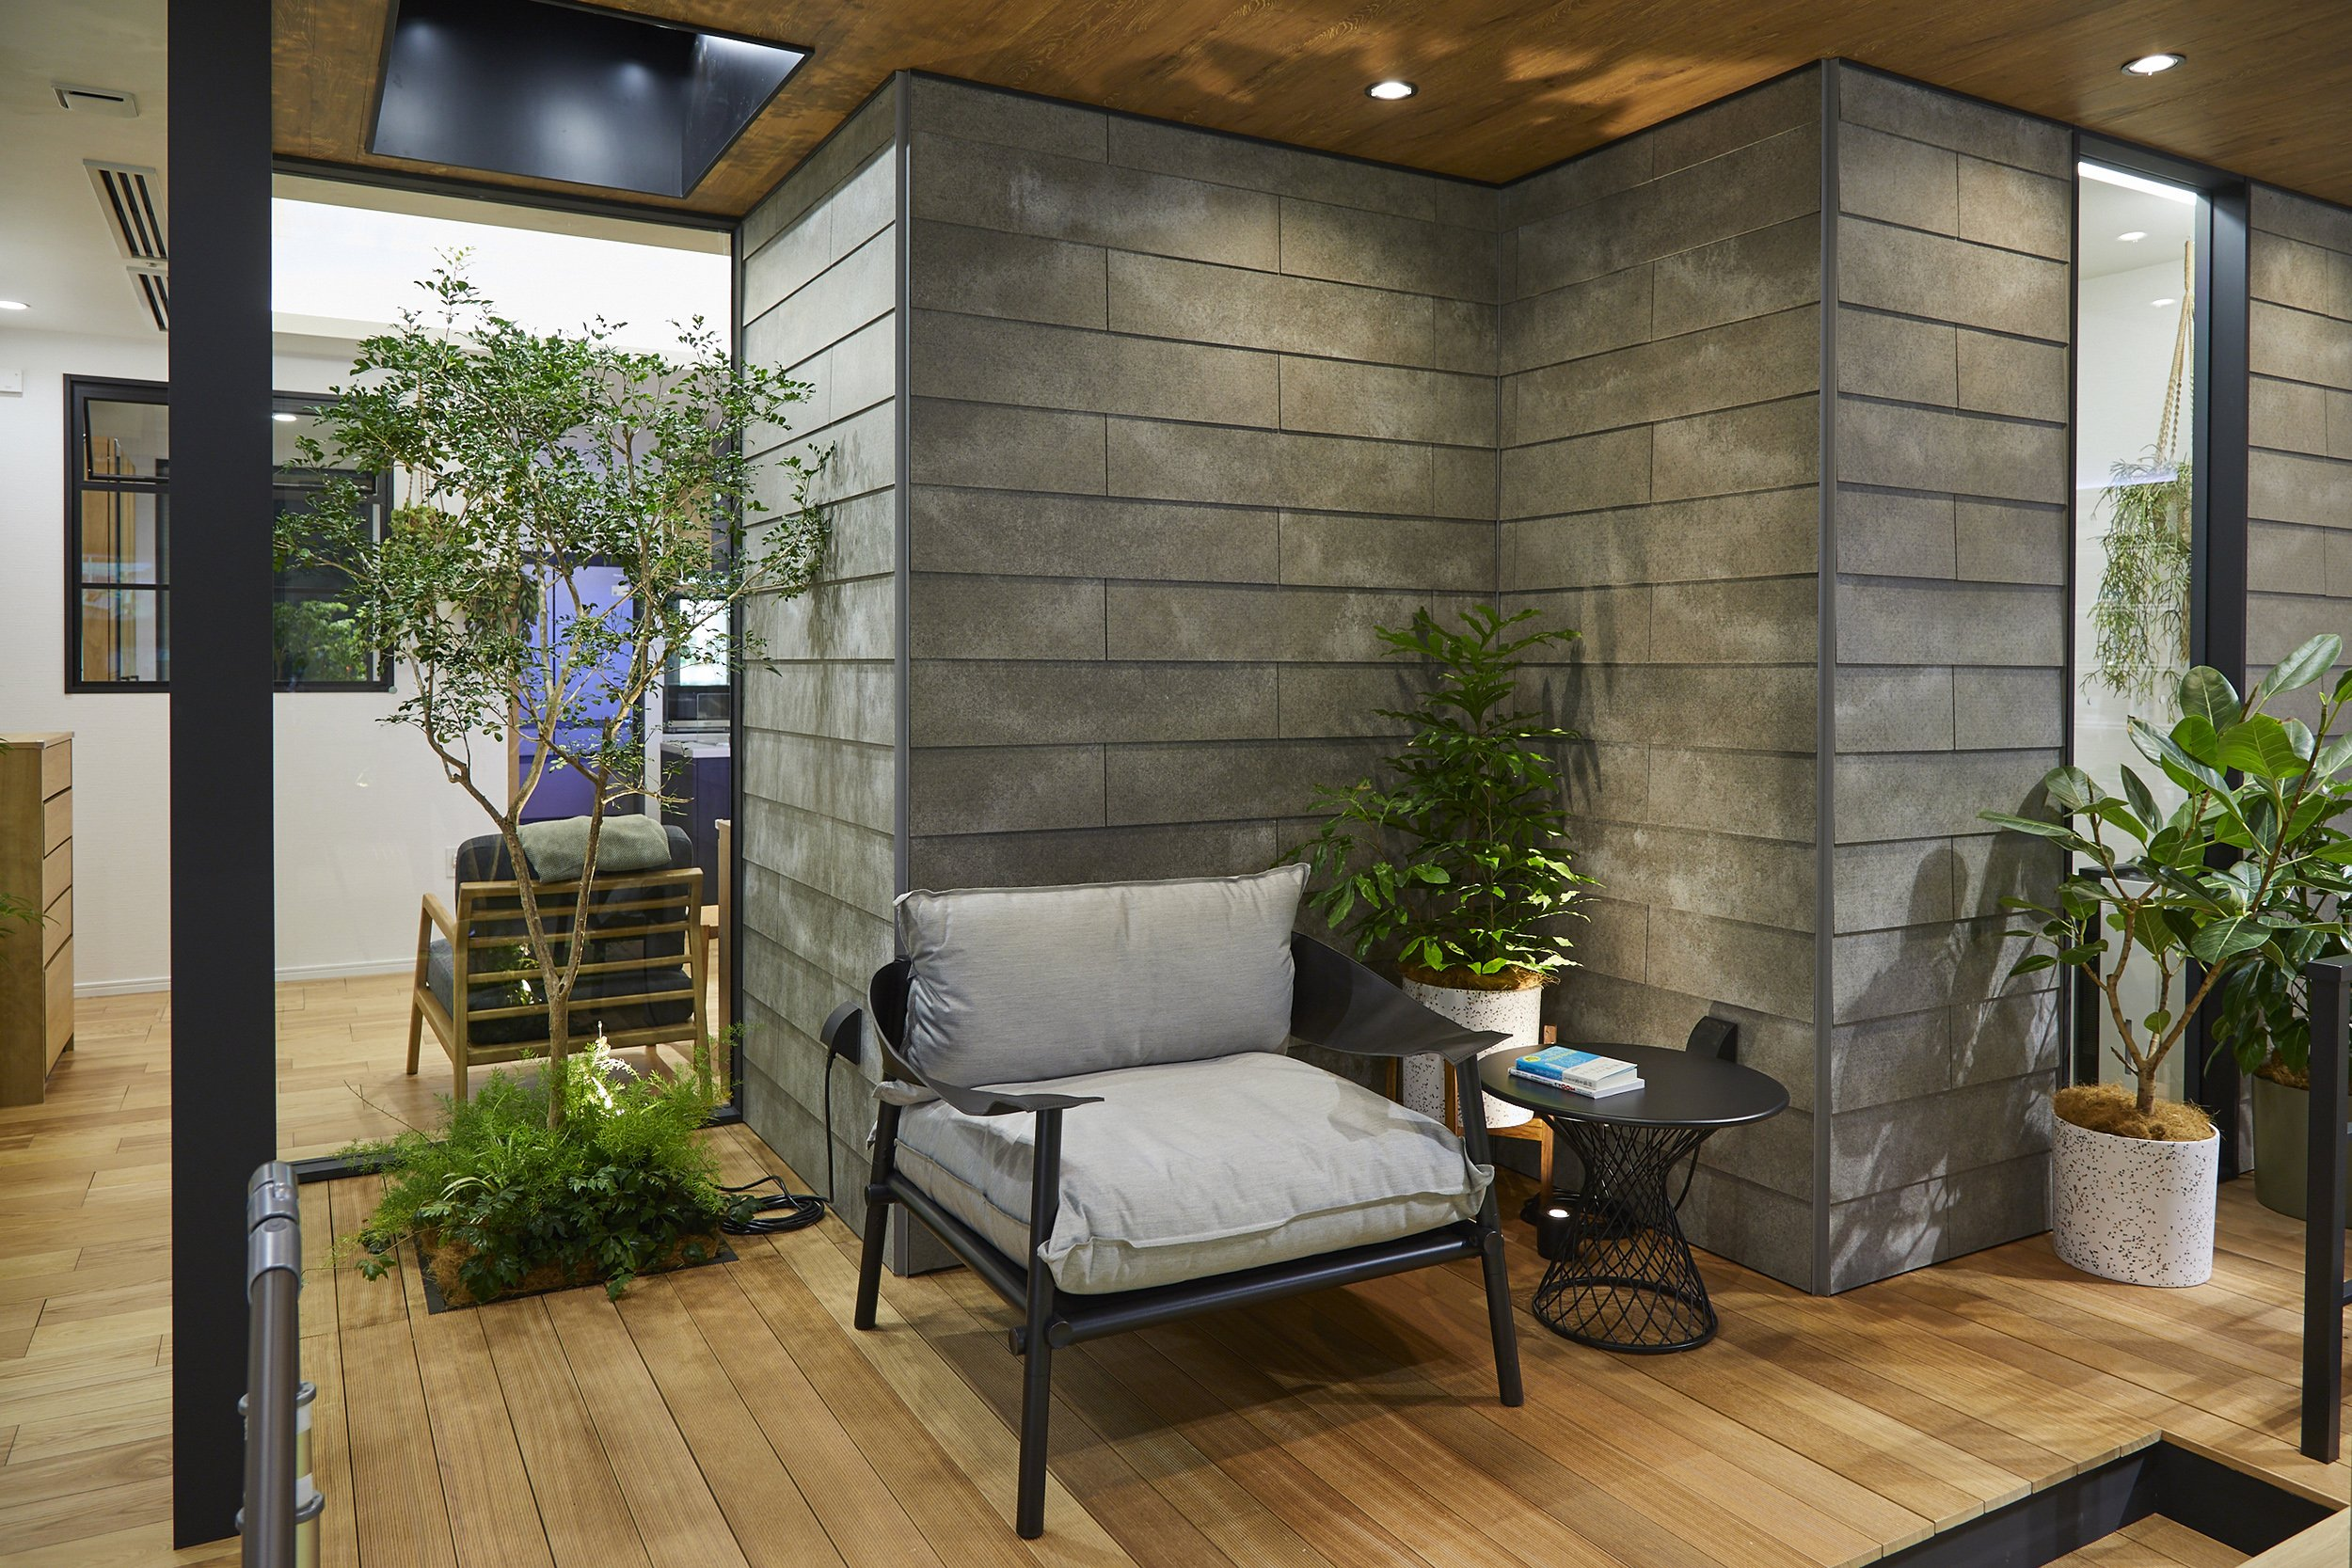 Photo: Terrace that utilizes greenery and lighting effectively